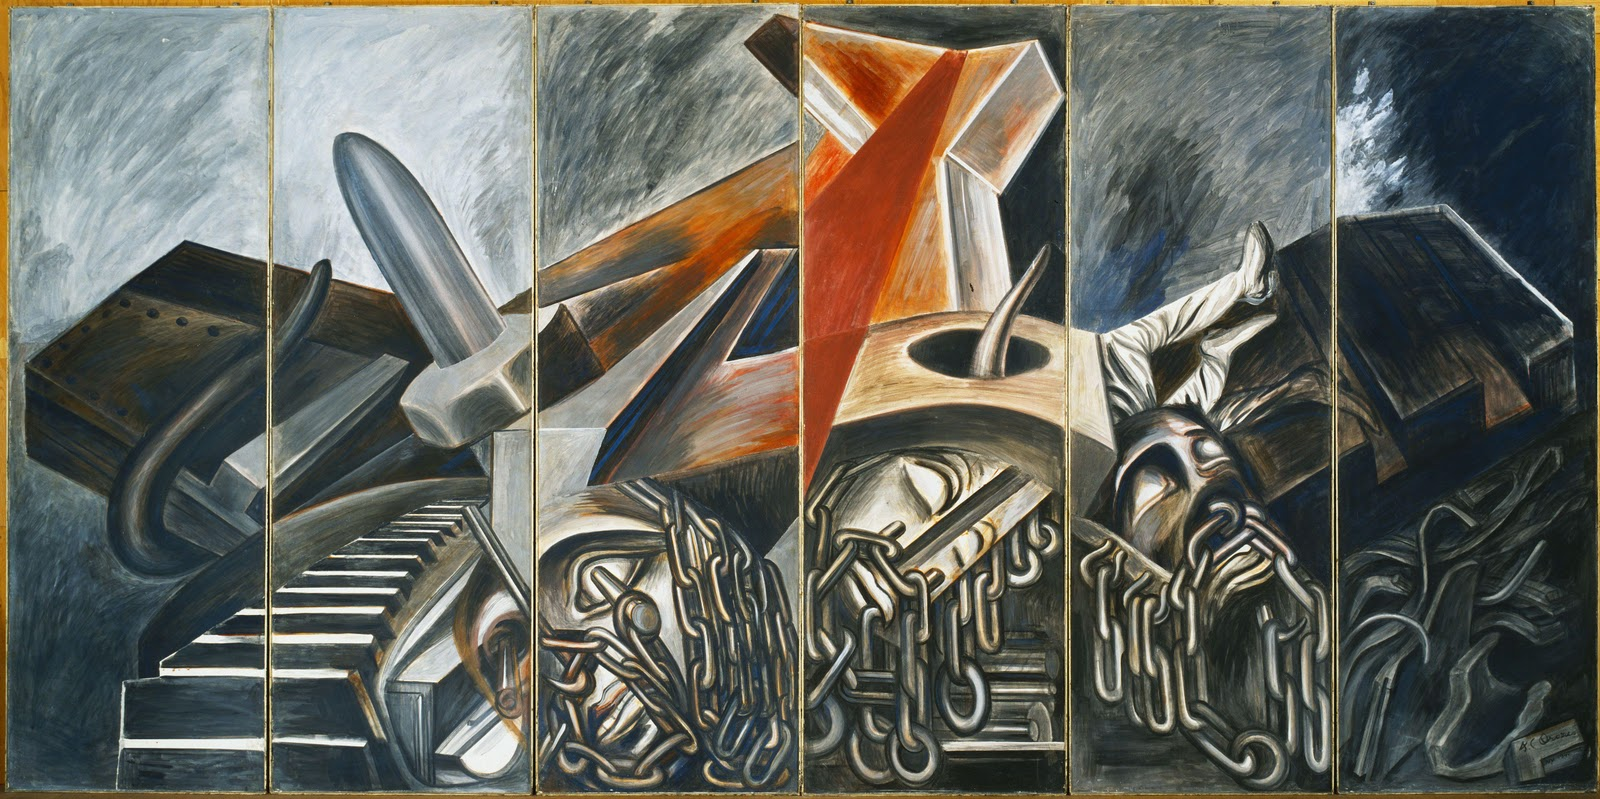 Dive Bomber and Tank, 1940 - Jose Clemente Orozco - WikiArt.org